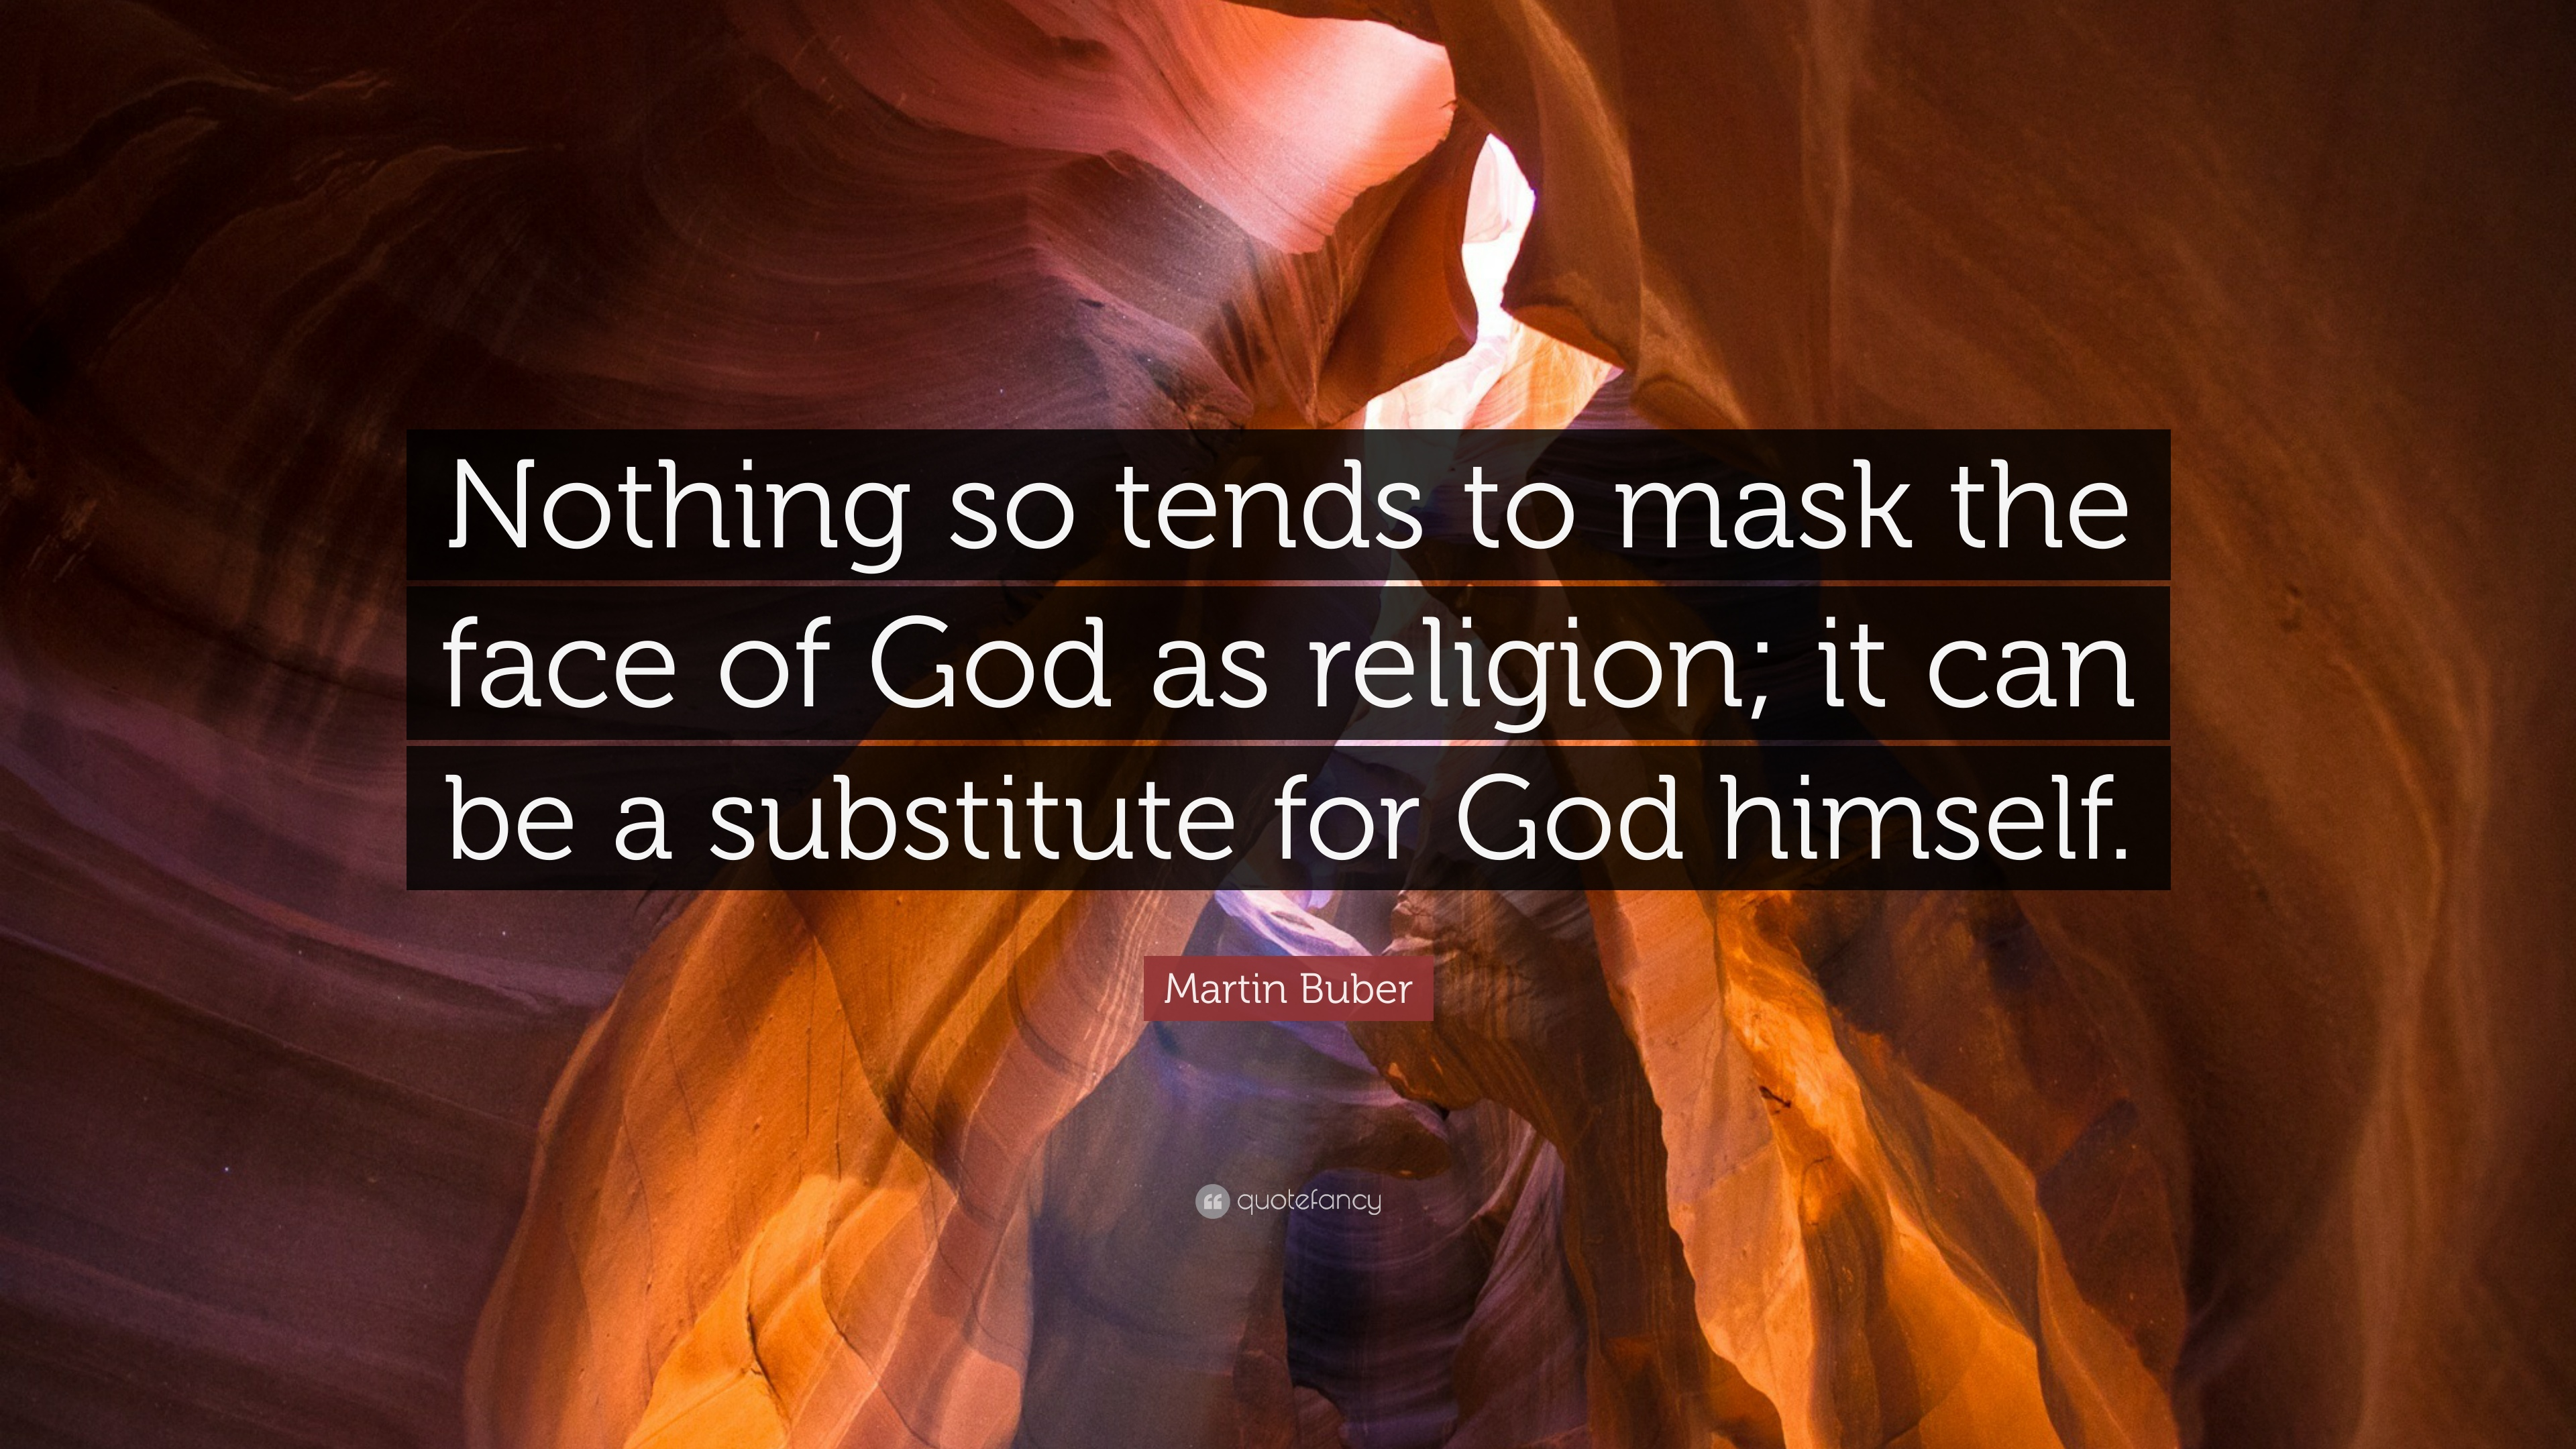 Delicieux Martin Buber Quote: U201cNothing So Tends To Mask The Face Of God As Religion